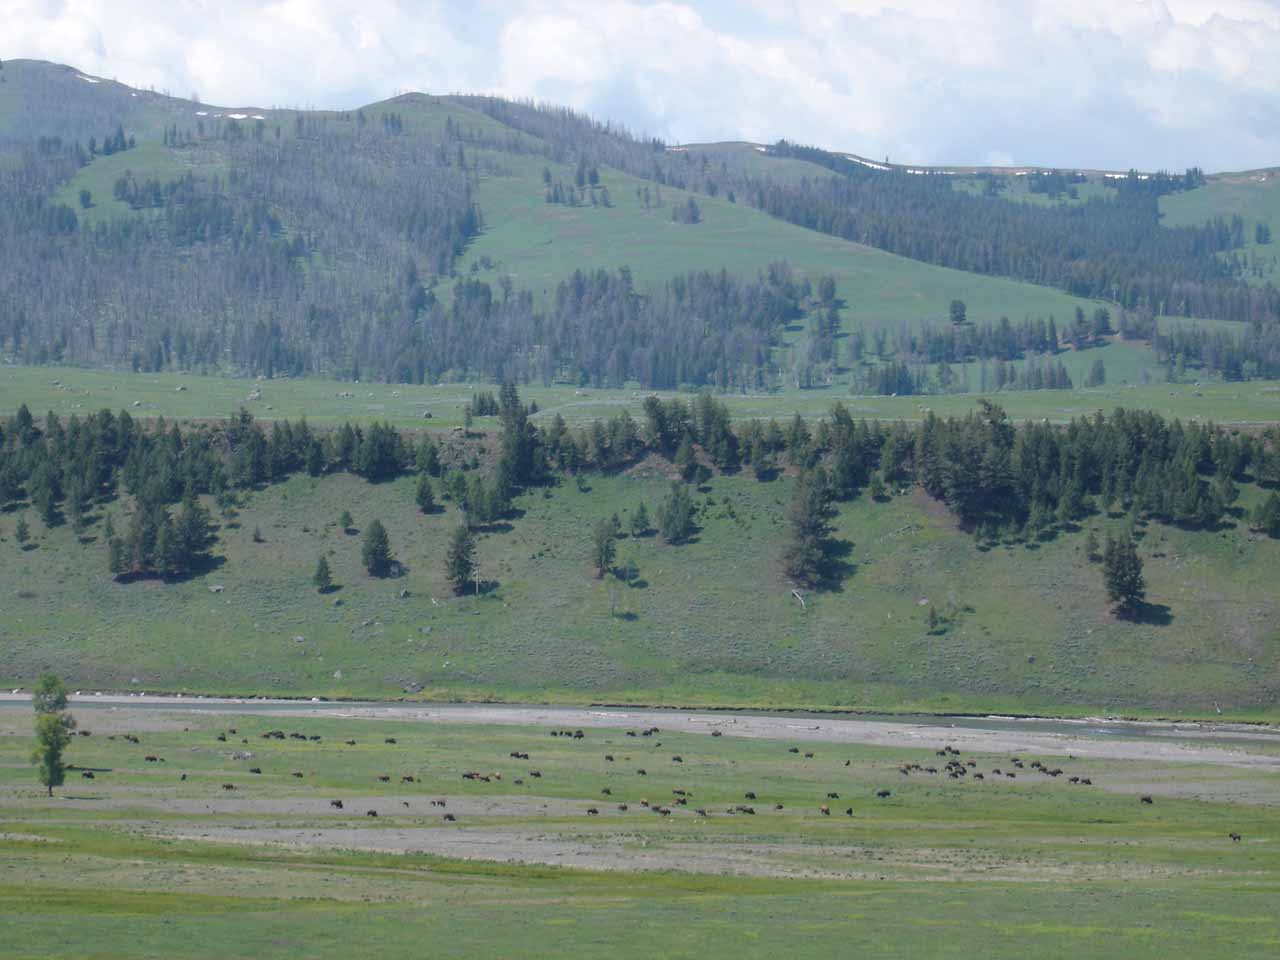 A herd of bison at the Lamar Valley though we were looking for wolves